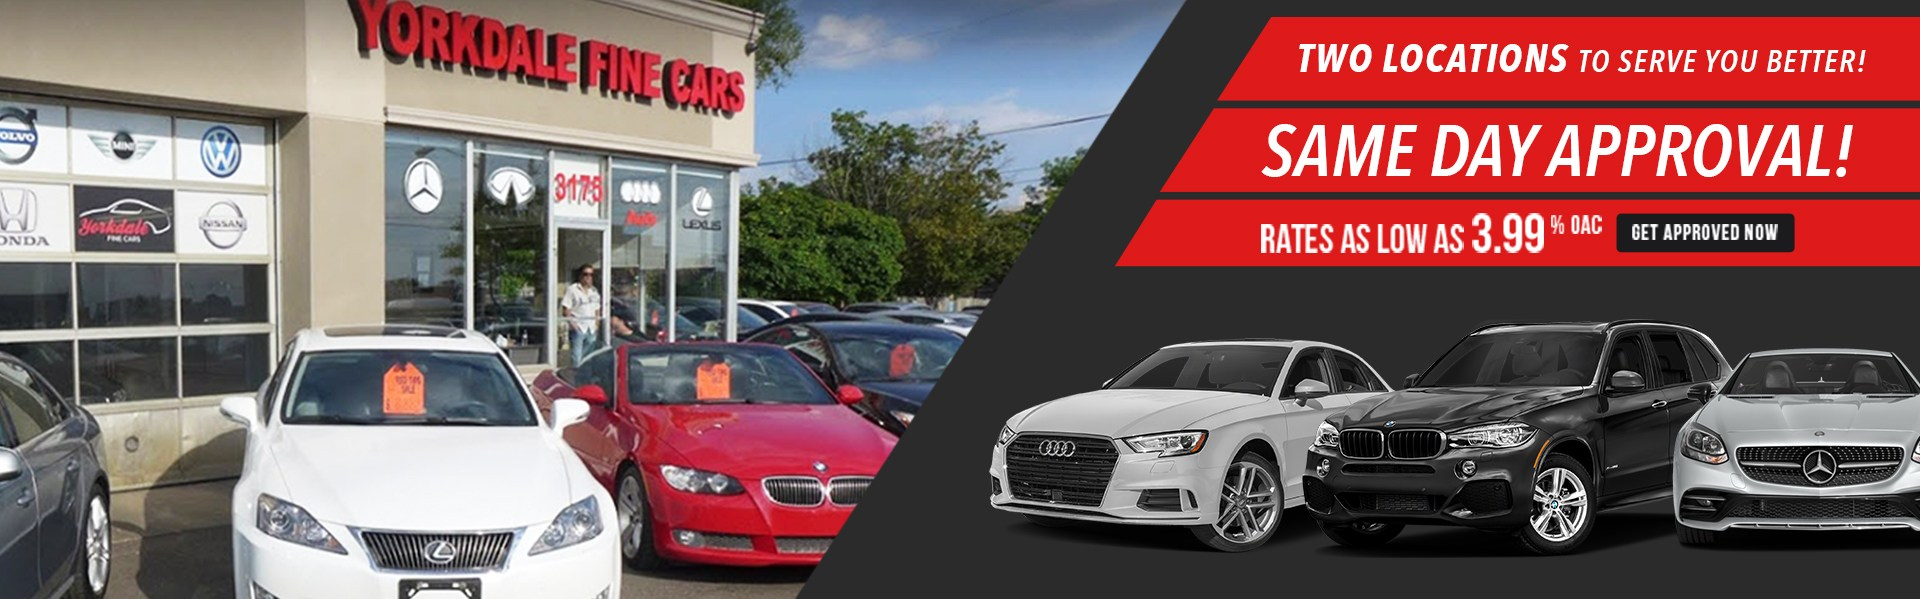 Yorkdale fine cars used cars dealership toronto on ccuart Images